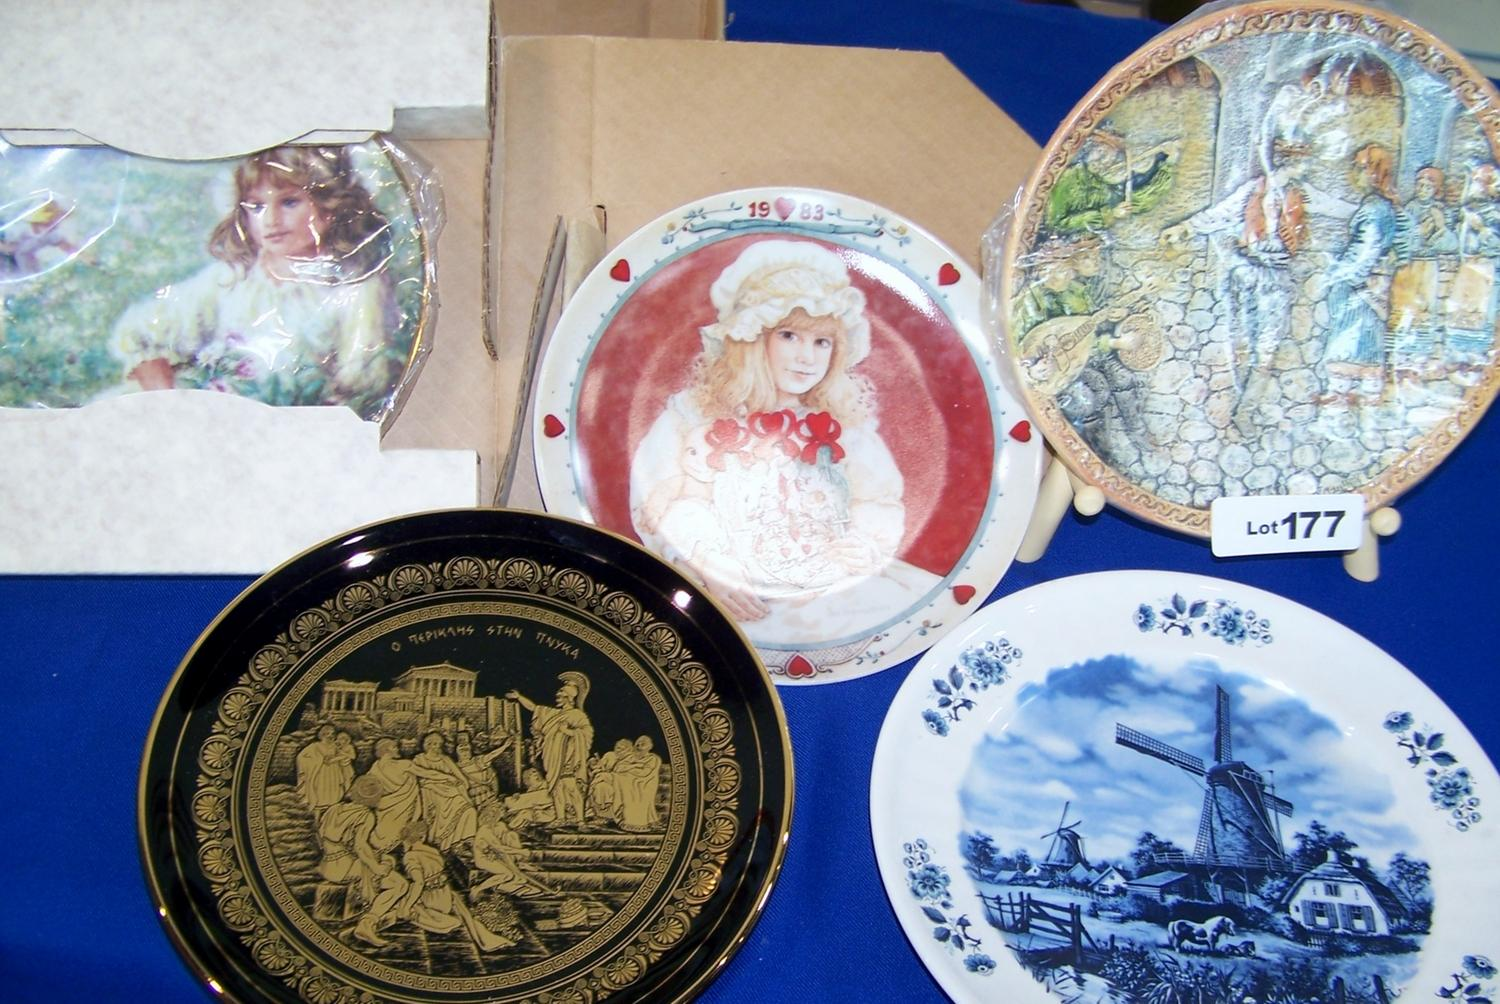 Image 1  Lot of (5) Collectible decorative plates. 1. Delft 1 & Lot of (5) Collectible decorative plates. 1. Delft 1. Handmade ...